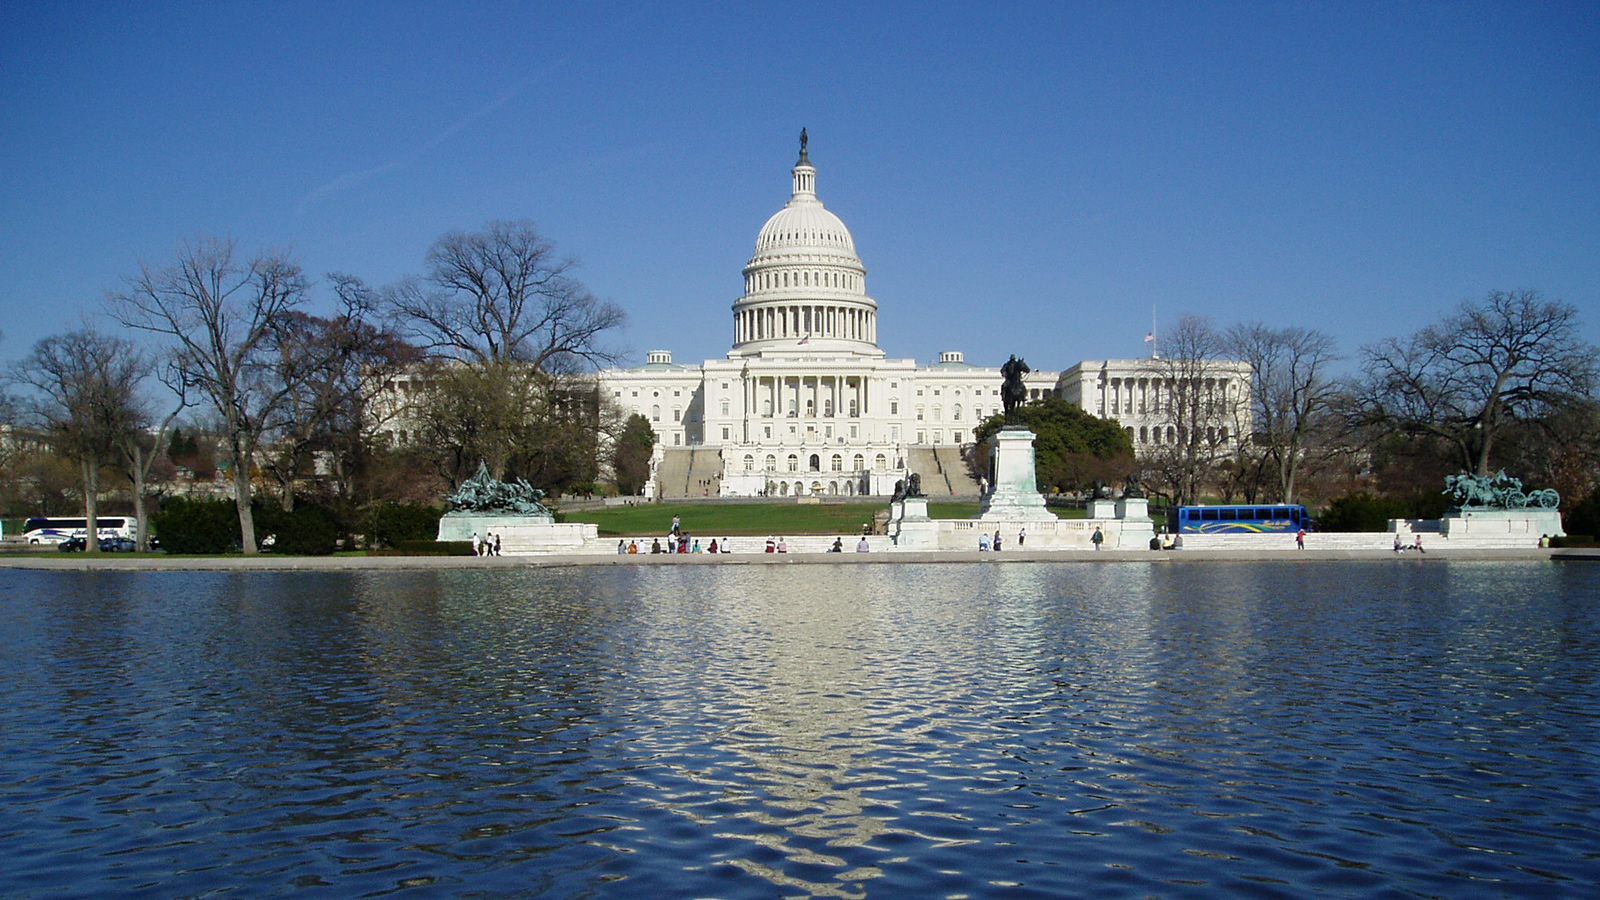 <h4>YOUR ENVIRONMENTAL WATCHDOG</h4><h5>Our Washington, D.C., team is watching the White House and regulatory agencies for any attempt to roll back protections for our water, our public lands, our coasts or our climate.</h5><em>Dokaspar, CC-BY-SA-3.0</em>